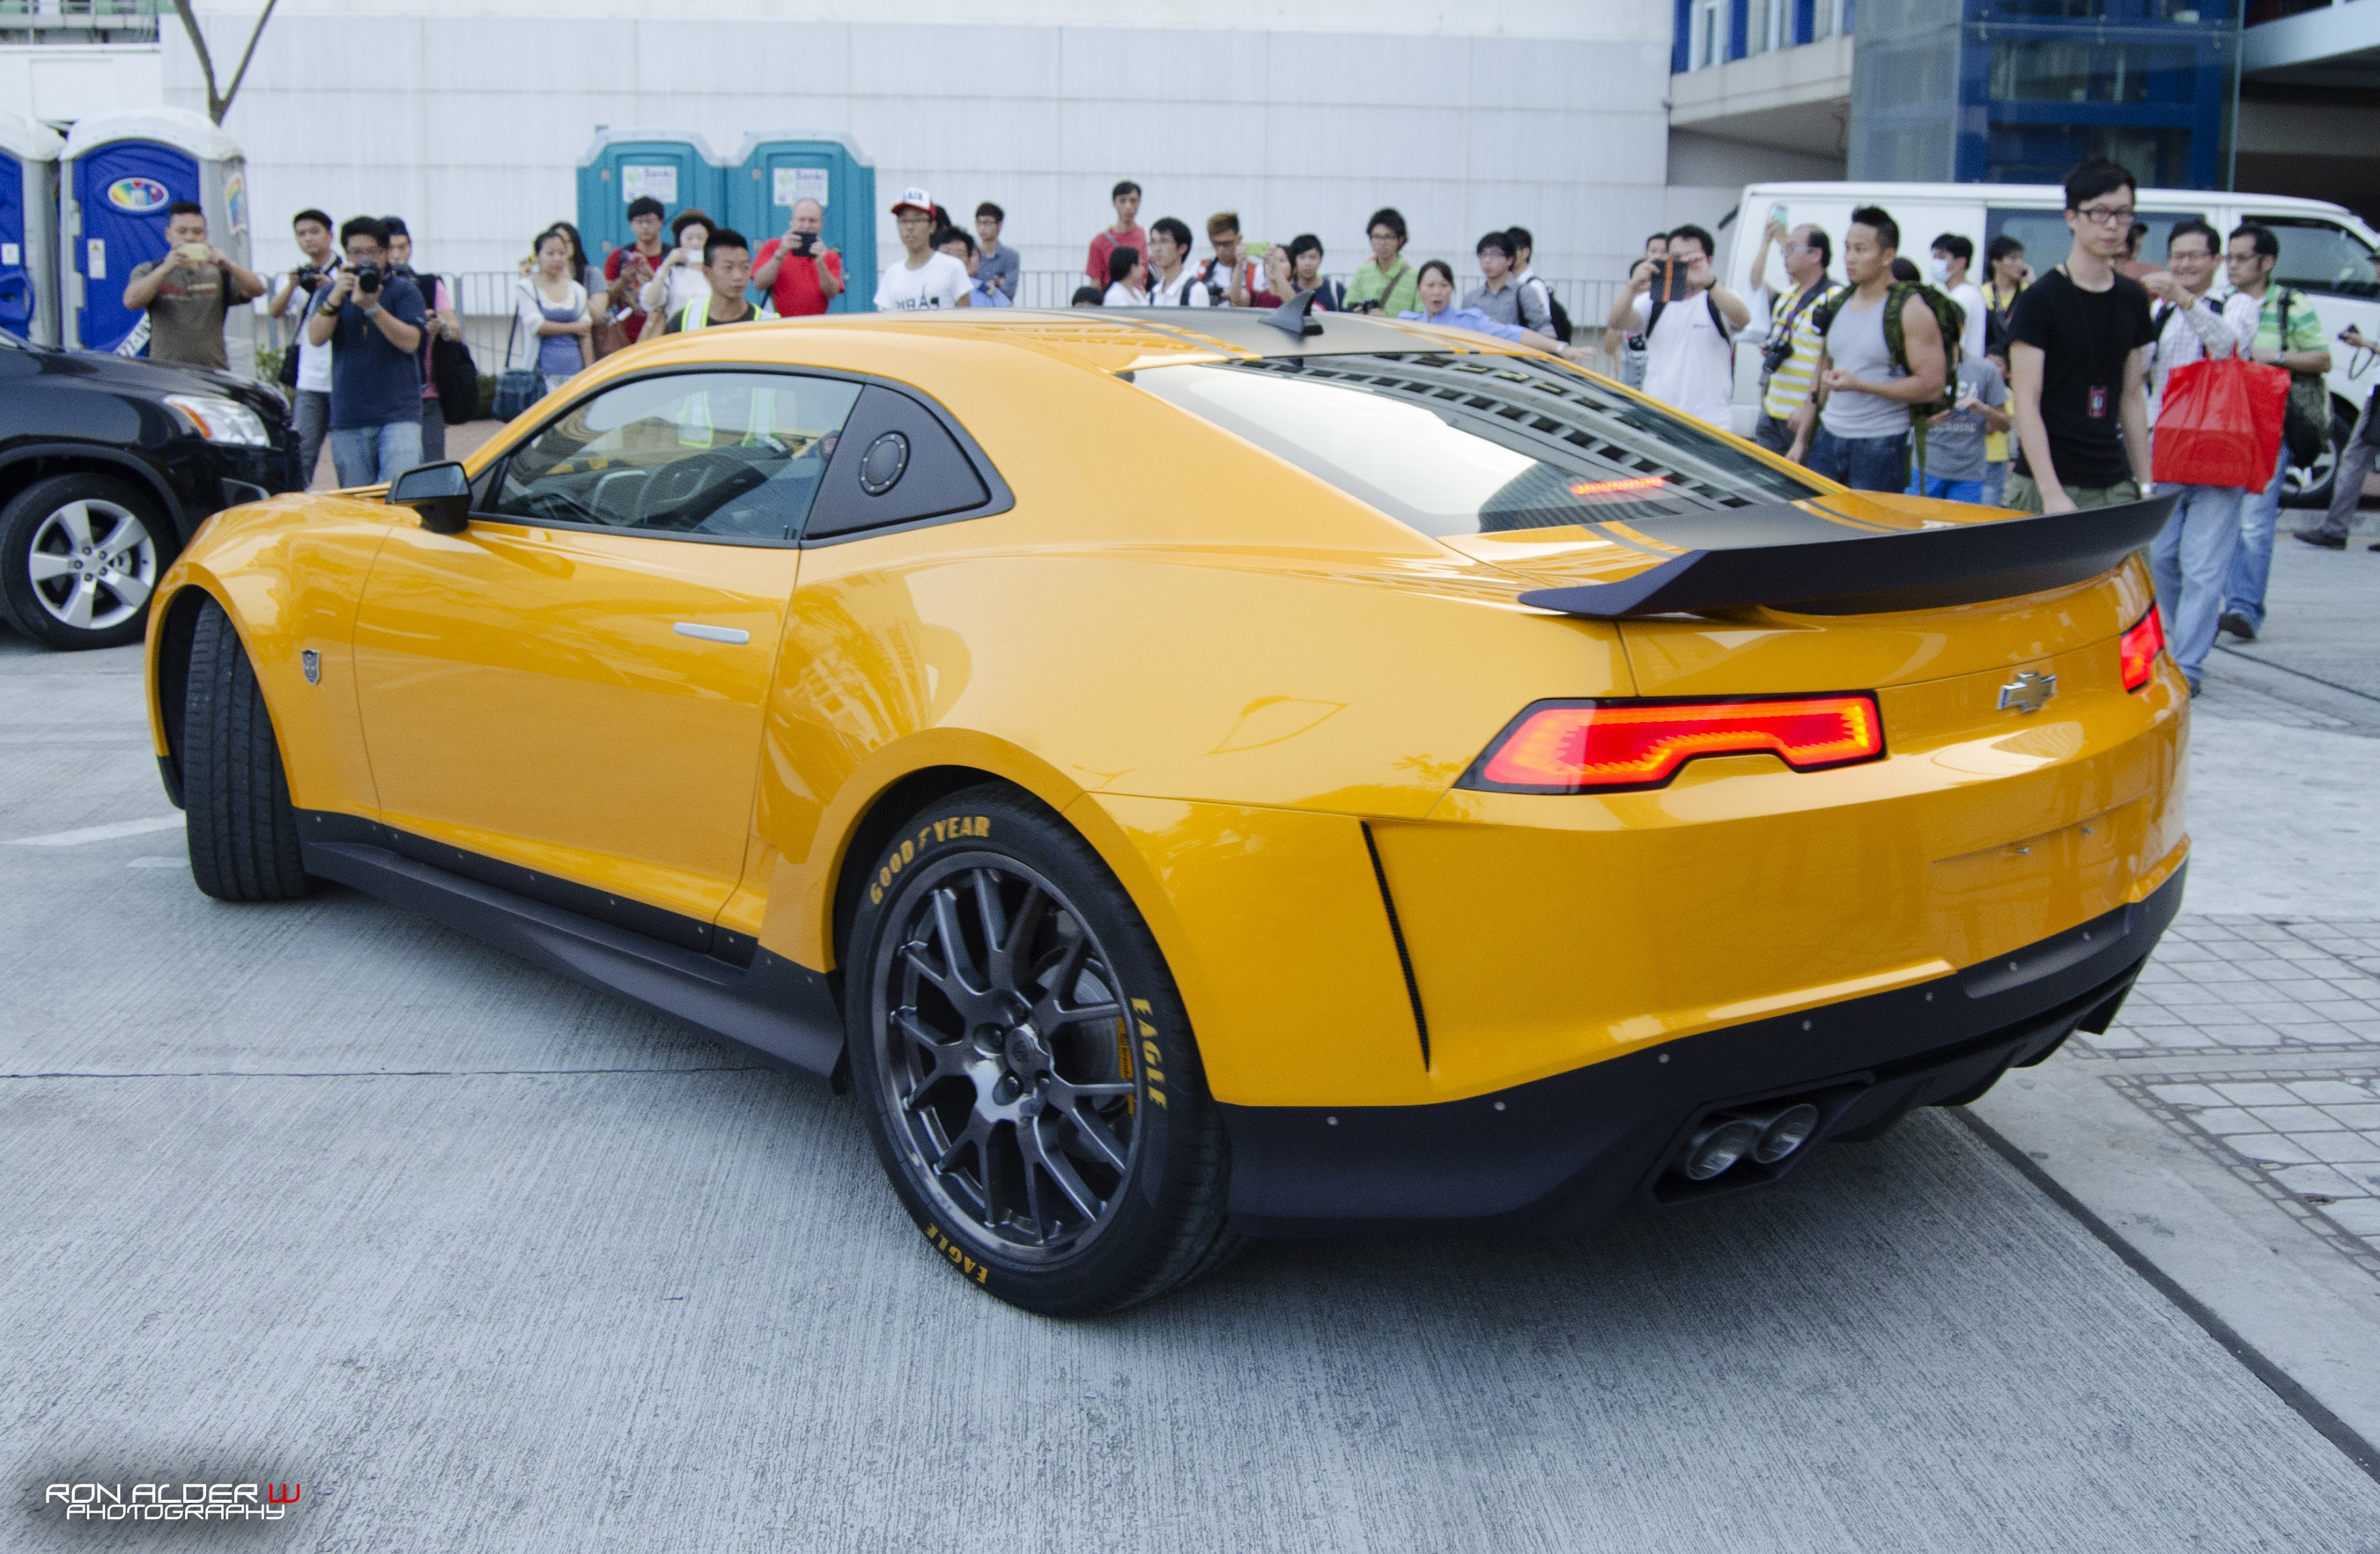 2014 chevrolet transformers 4 bumblebee camaro gallery 529623 top speed. Black Bedroom Furniture Sets. Home Design Ideas